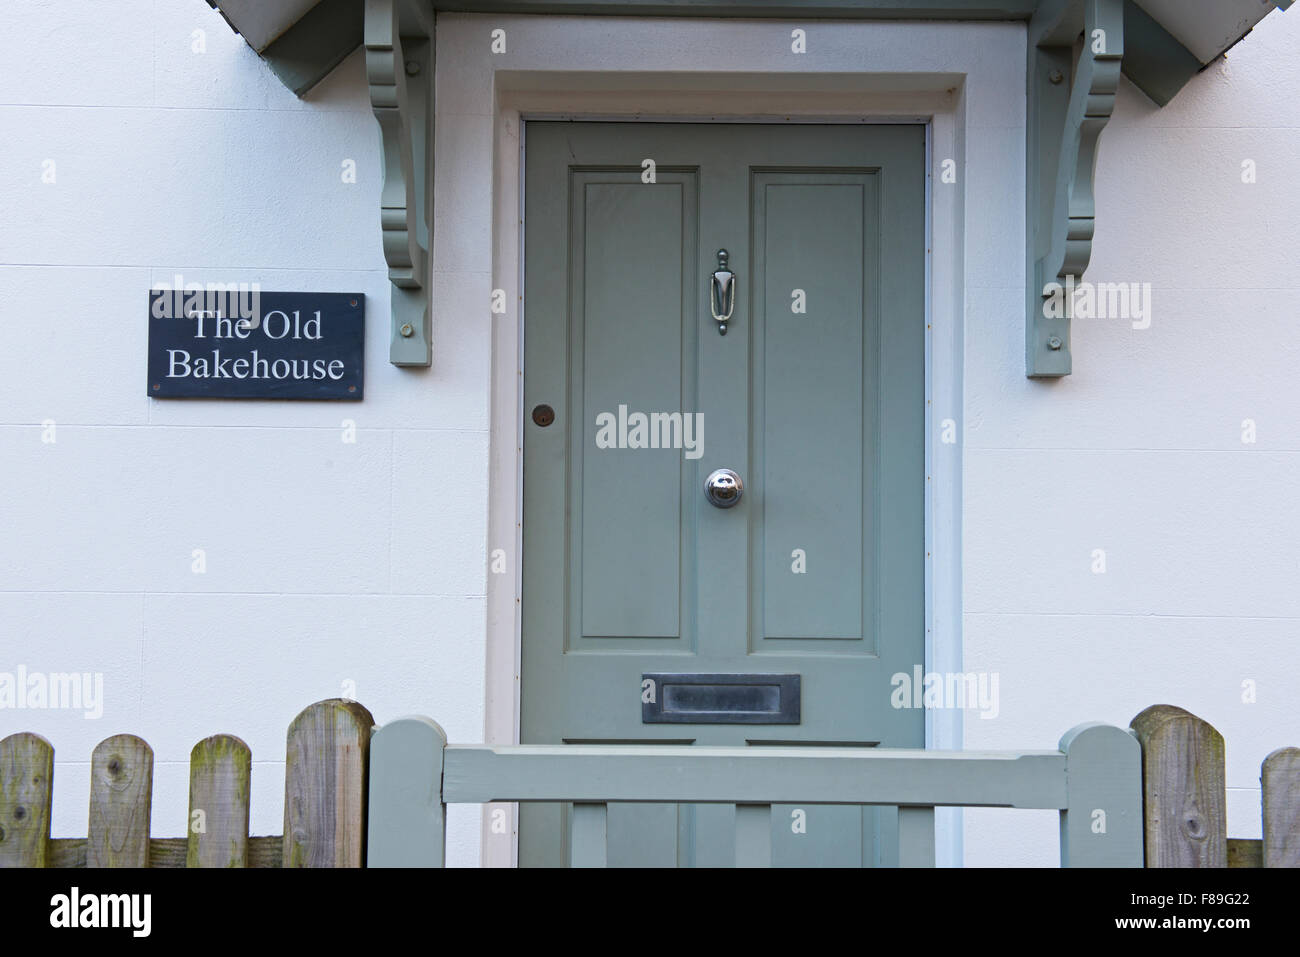 House with sign - The Old Bakehouse - in the village of Bosham, Sussex, England UK - Stock Image